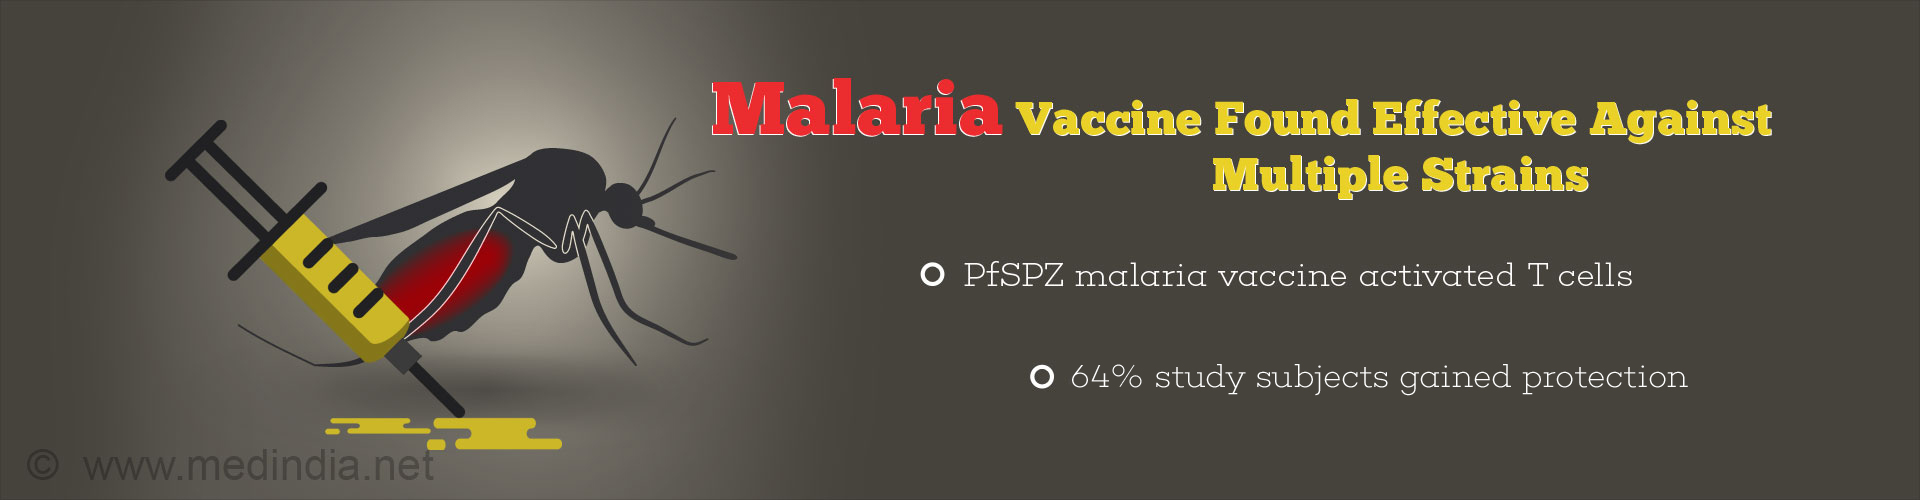 Experimental Malaria Vaccine Found Effective Against Different Strains